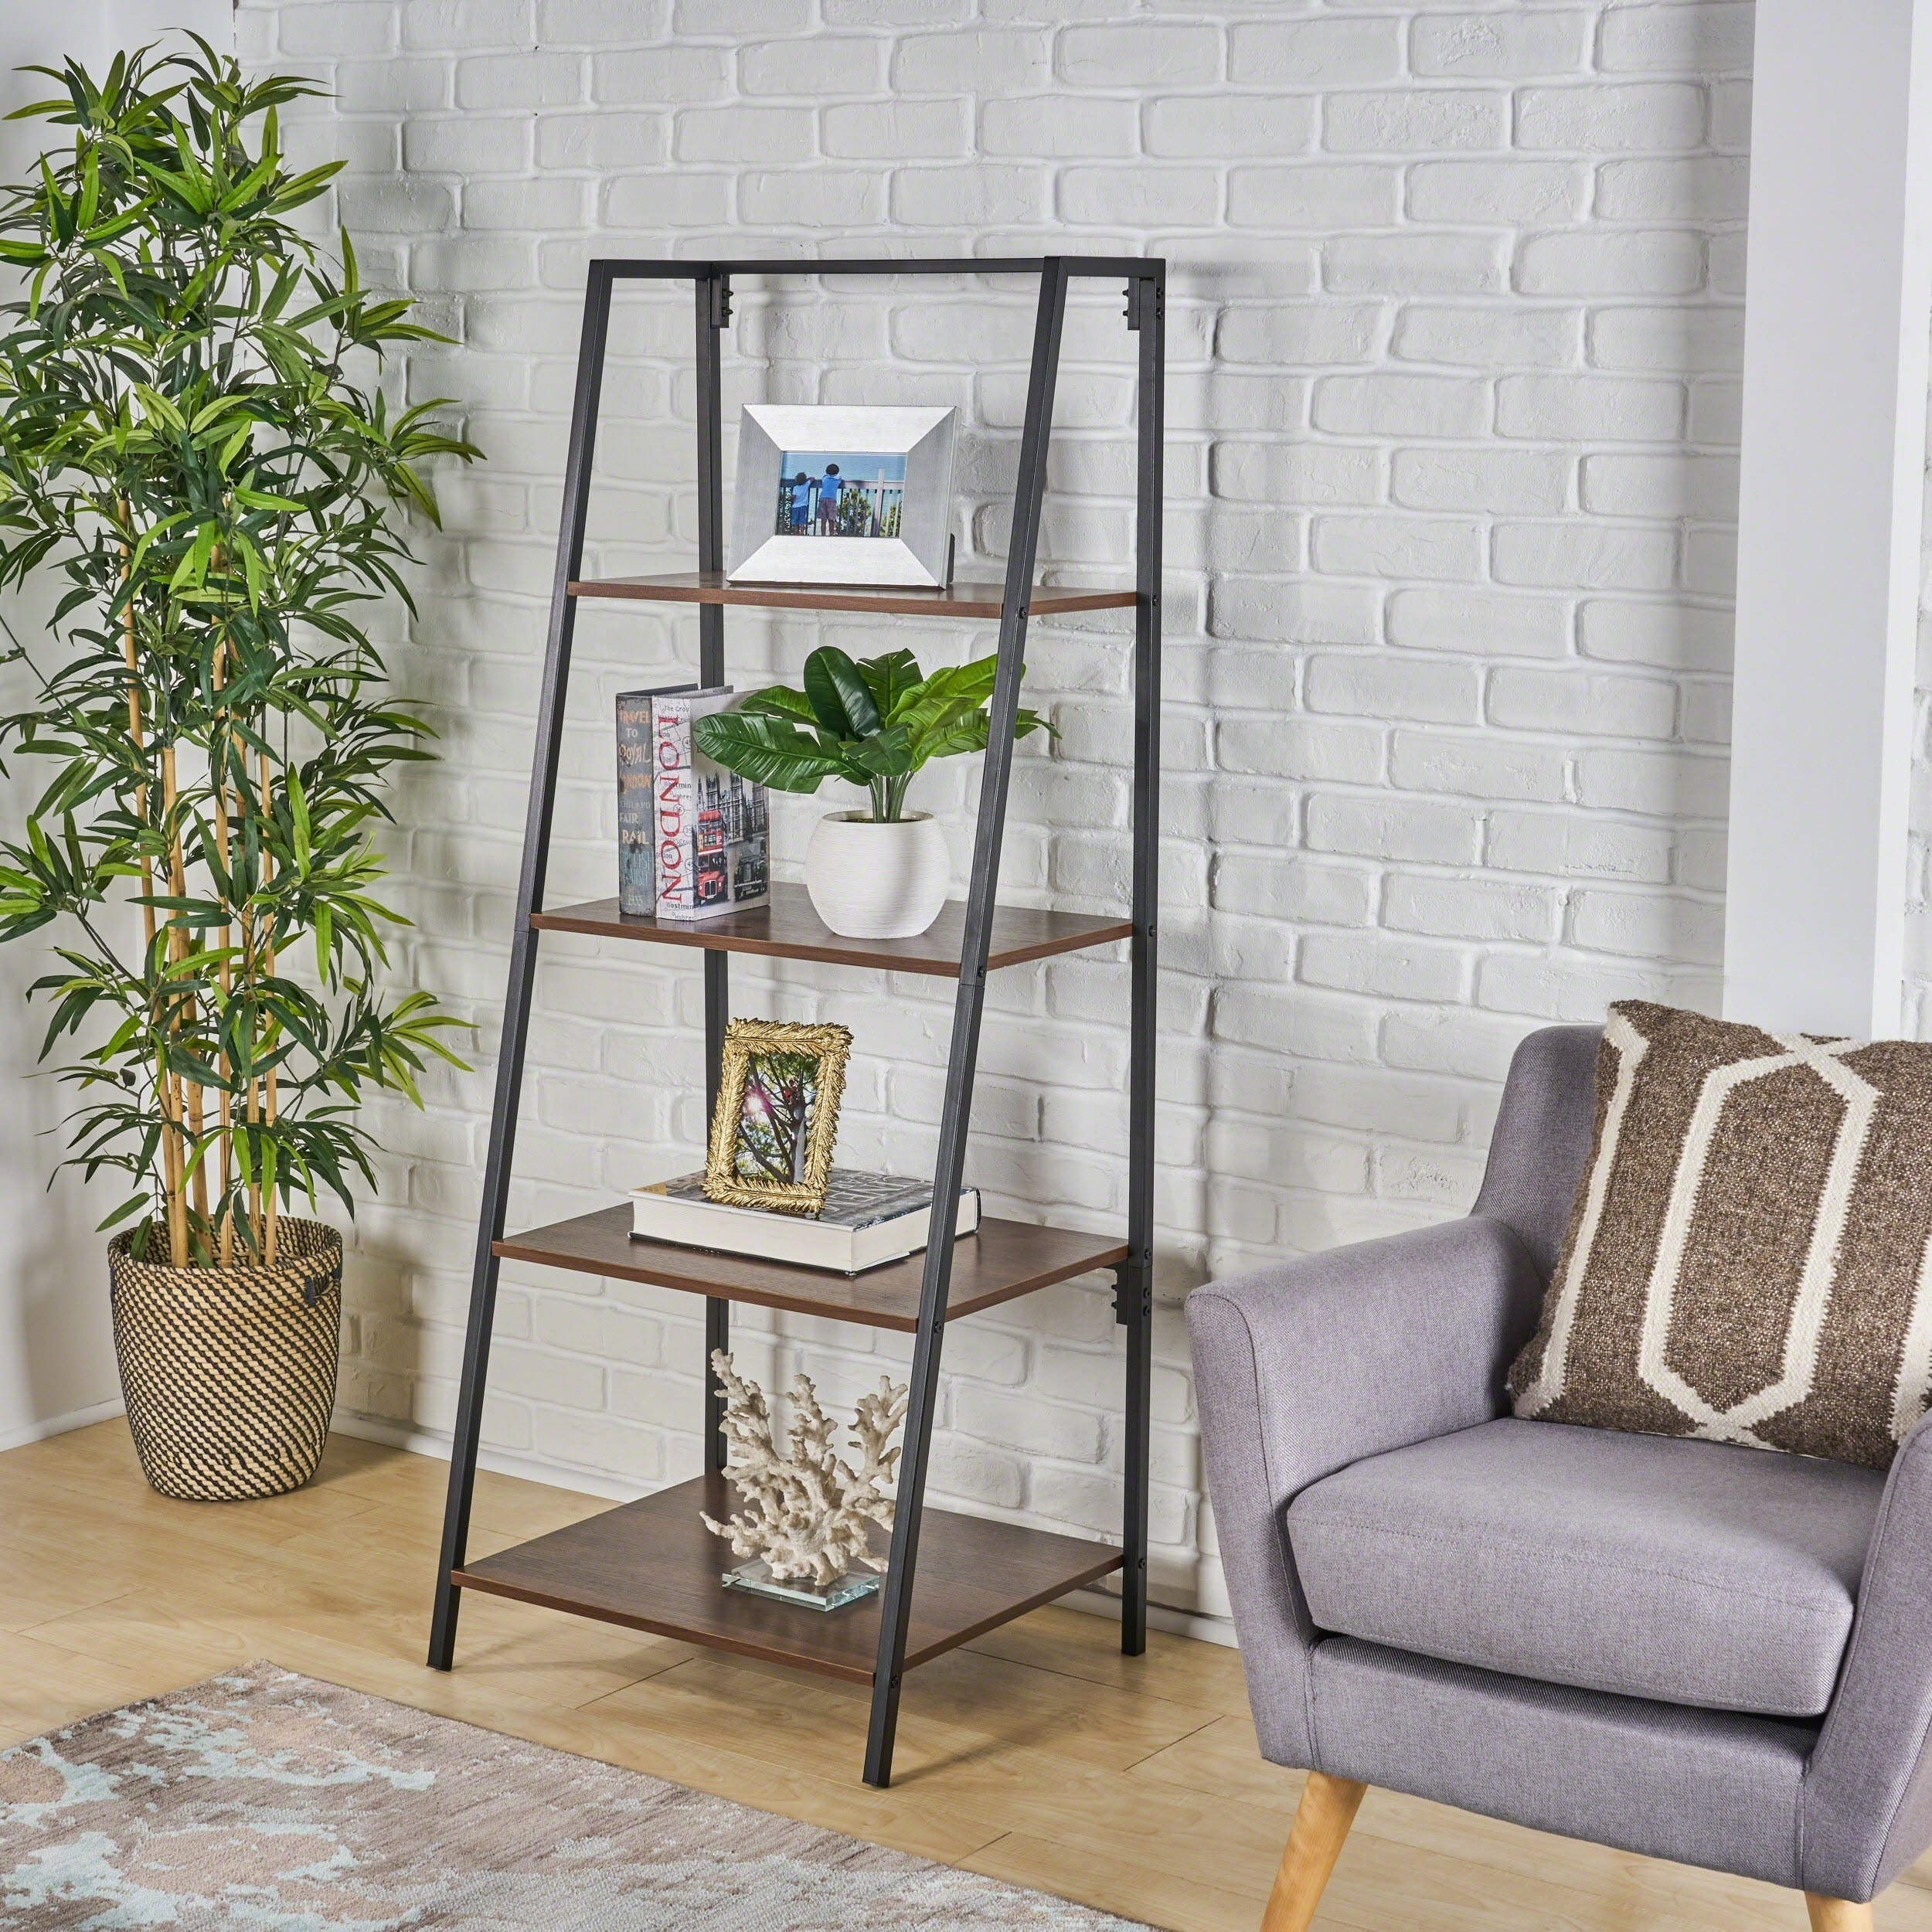 Euclid Industrial 4 Shelf A Frame Faux Wood Bookcase By Christopher Knight Home 23 75 W X 19 75 D X 59 25 H